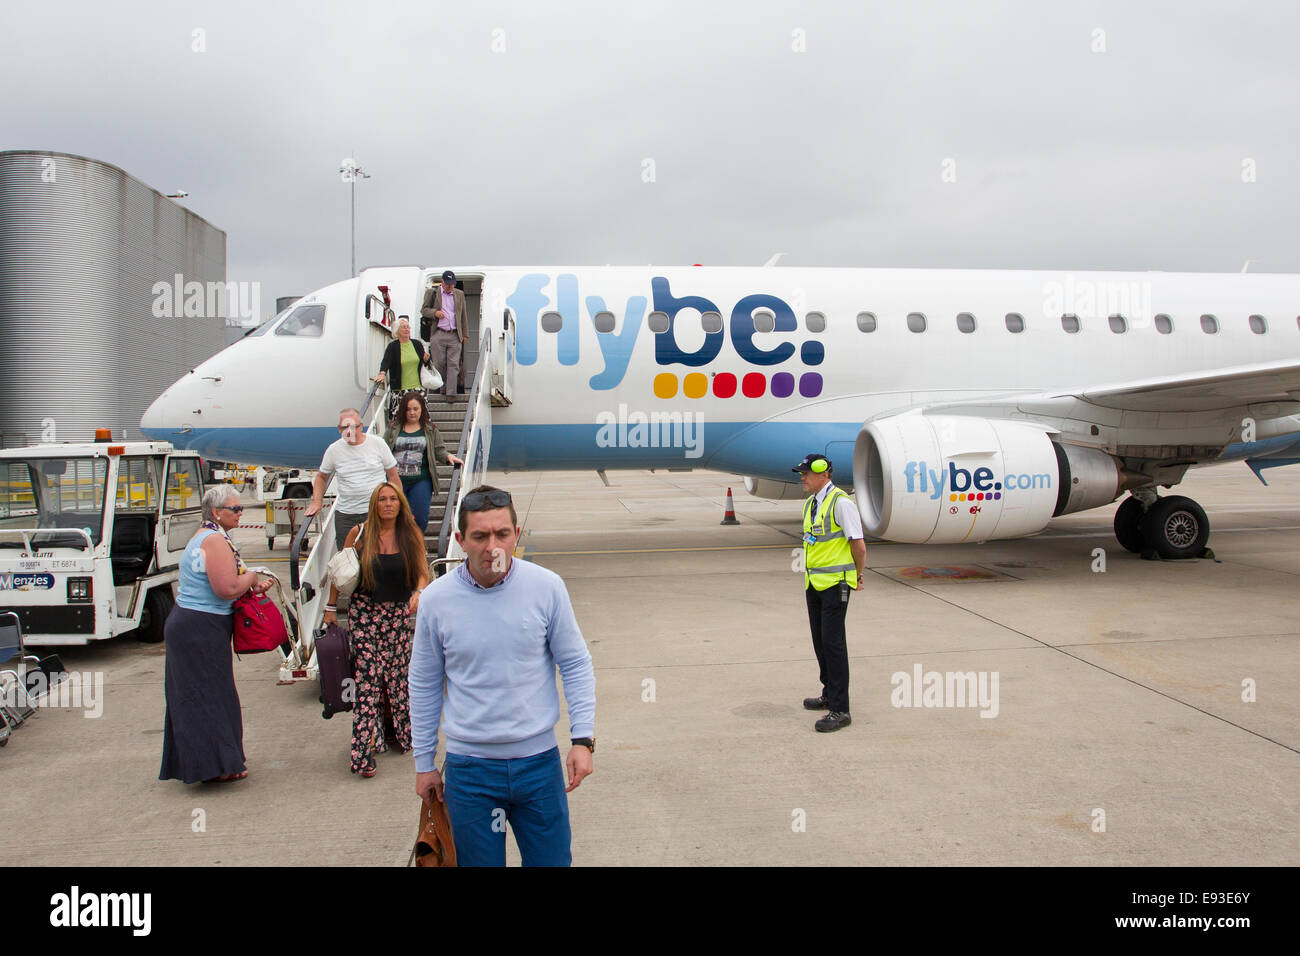 Flybe arrivals - arriving at Manchester Airport - Stock Image